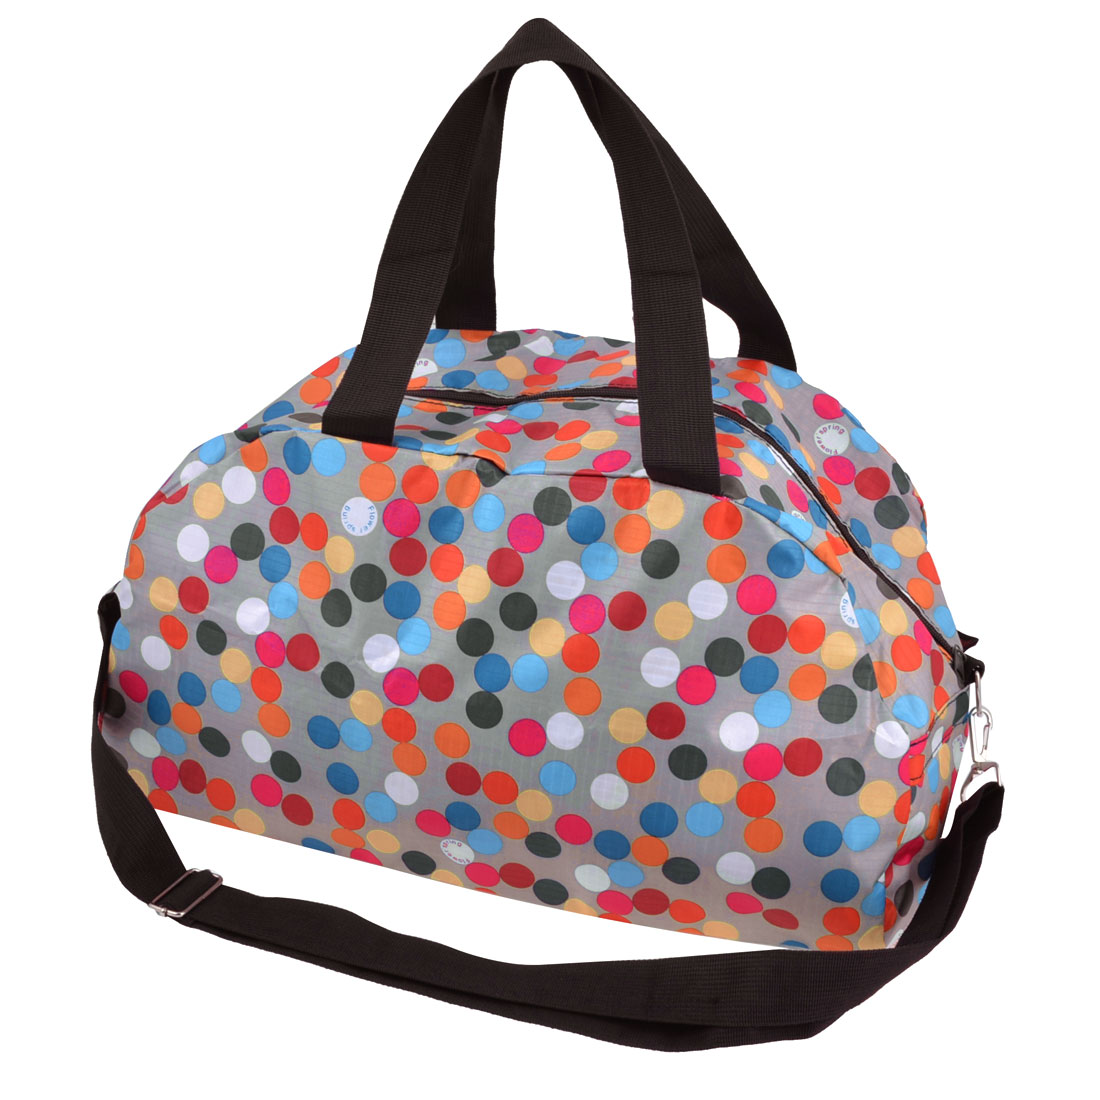 Traveling Household Foldable Colorful Dots Pattern Zipper Closure Clothes Storage Shoulder Hand Bag Pouch 50x23 x19cm